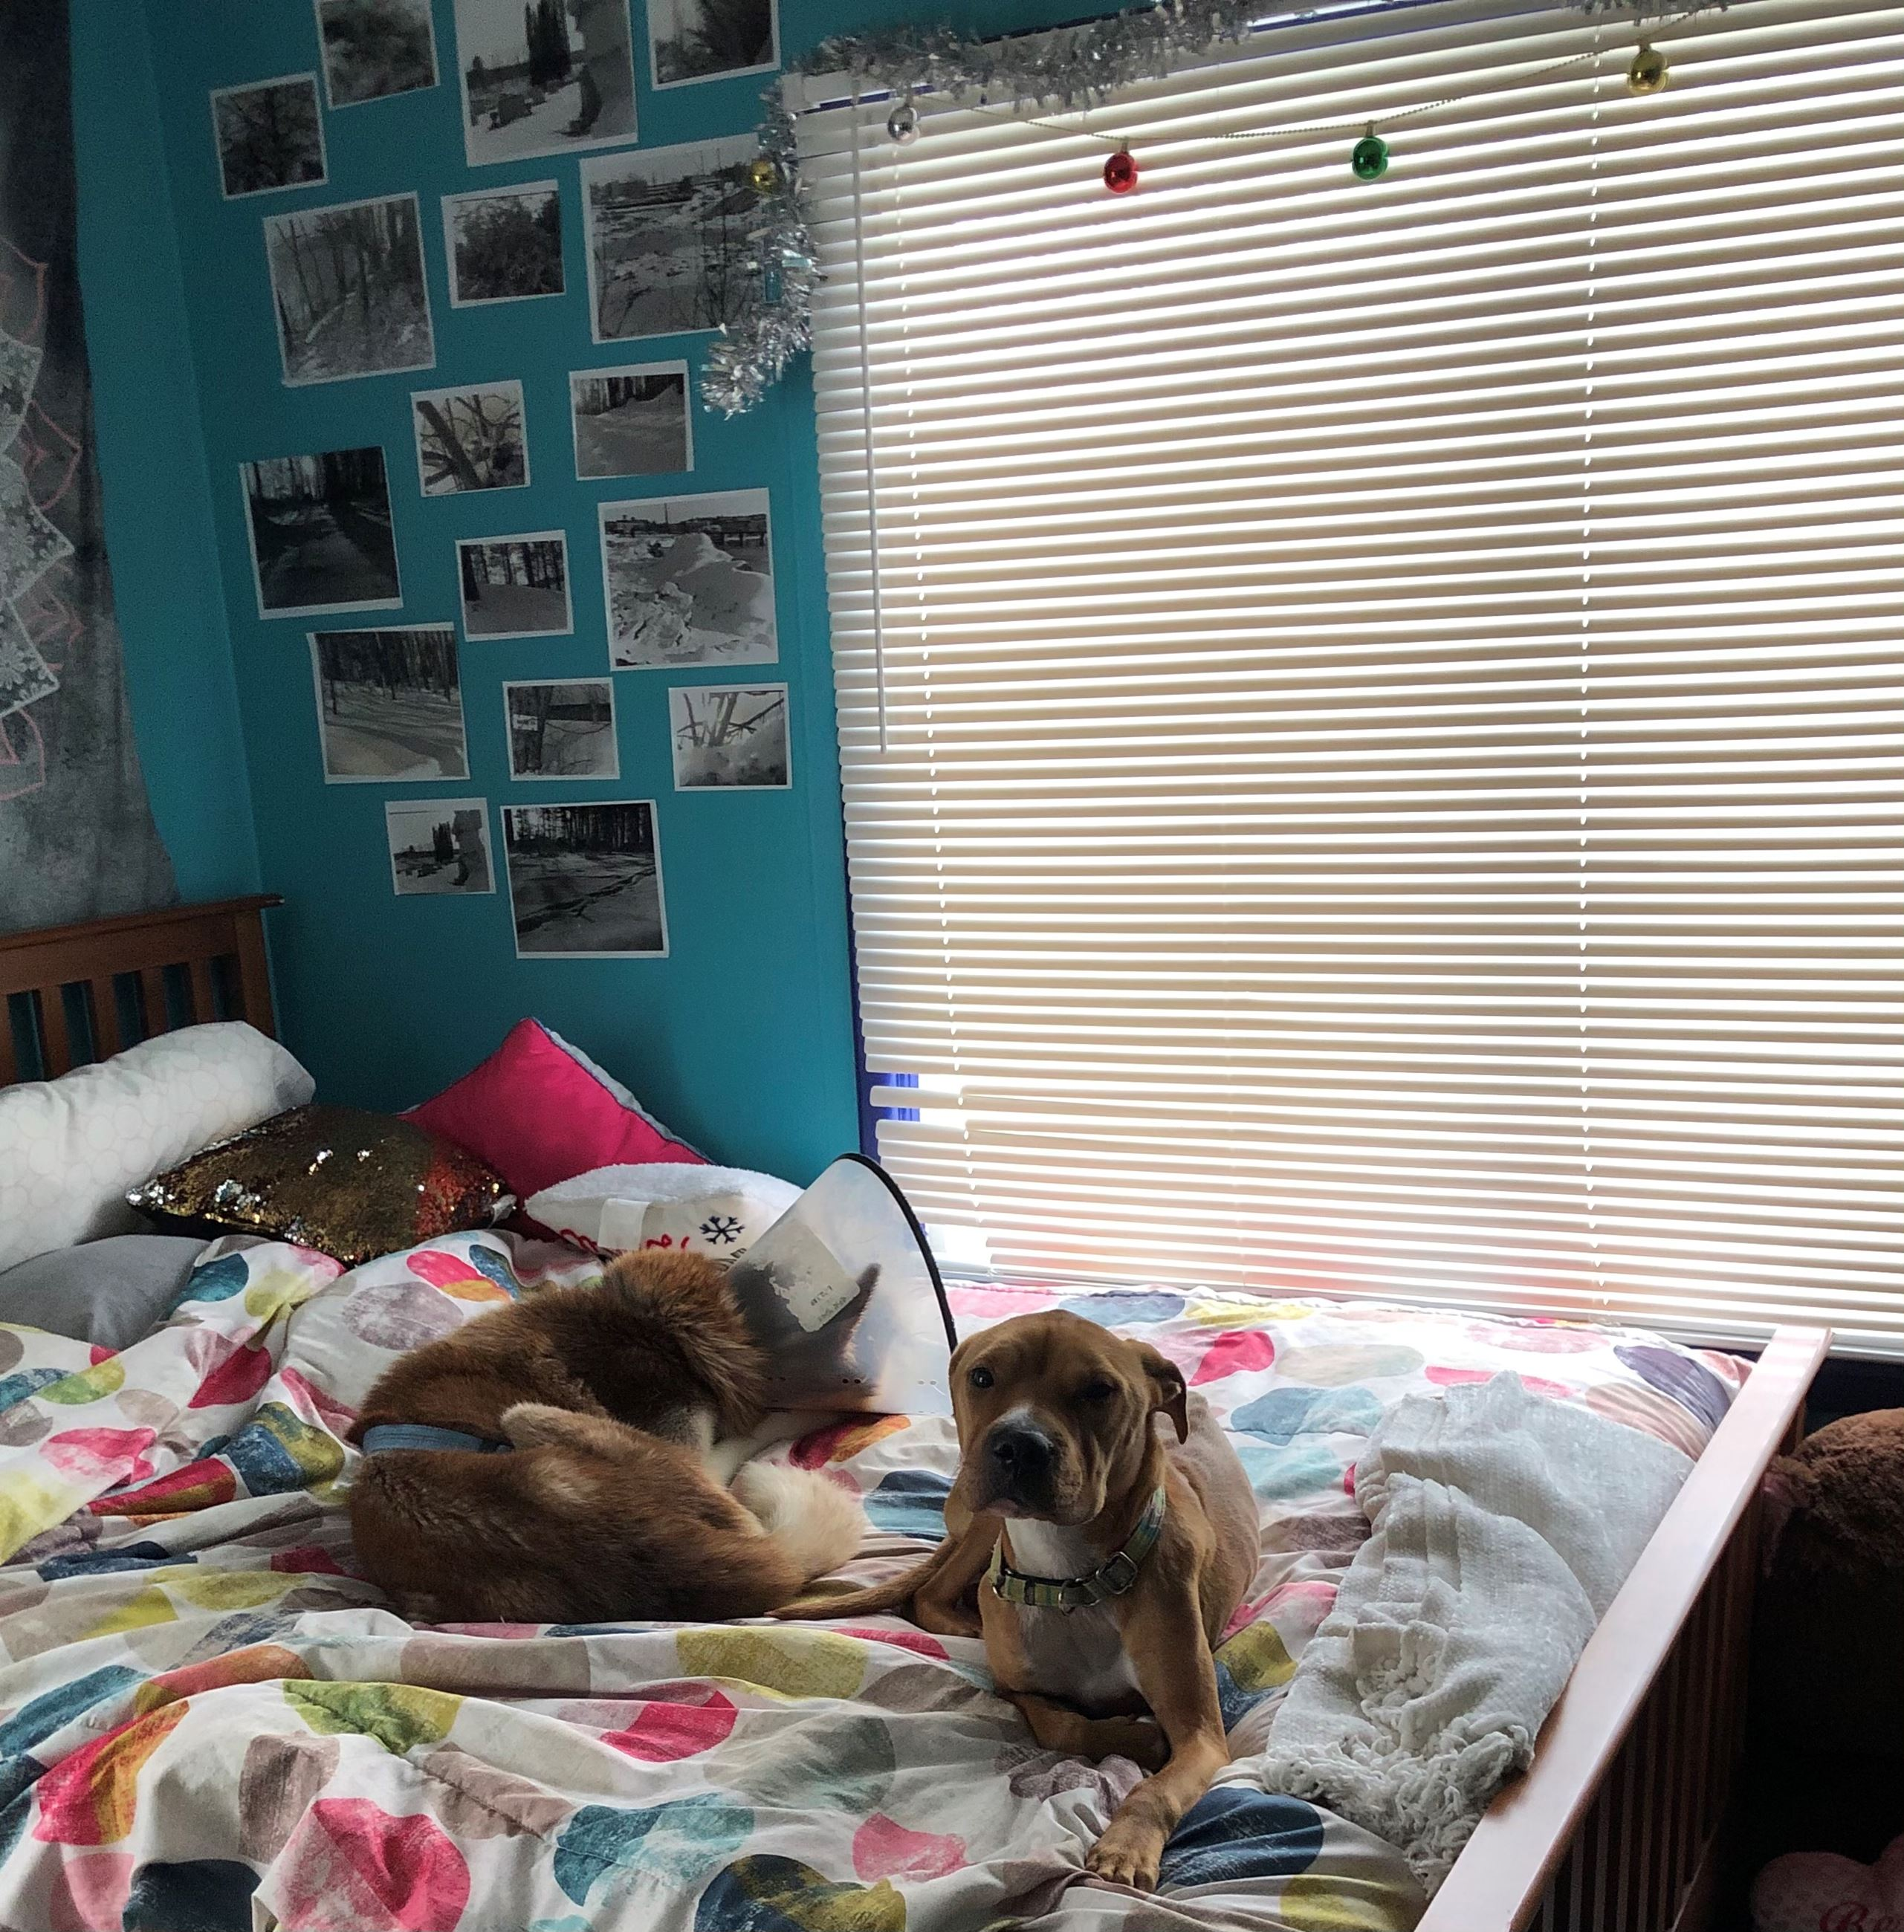 PHOTOVOICE - ARIANA'S DOGS ON HER BED